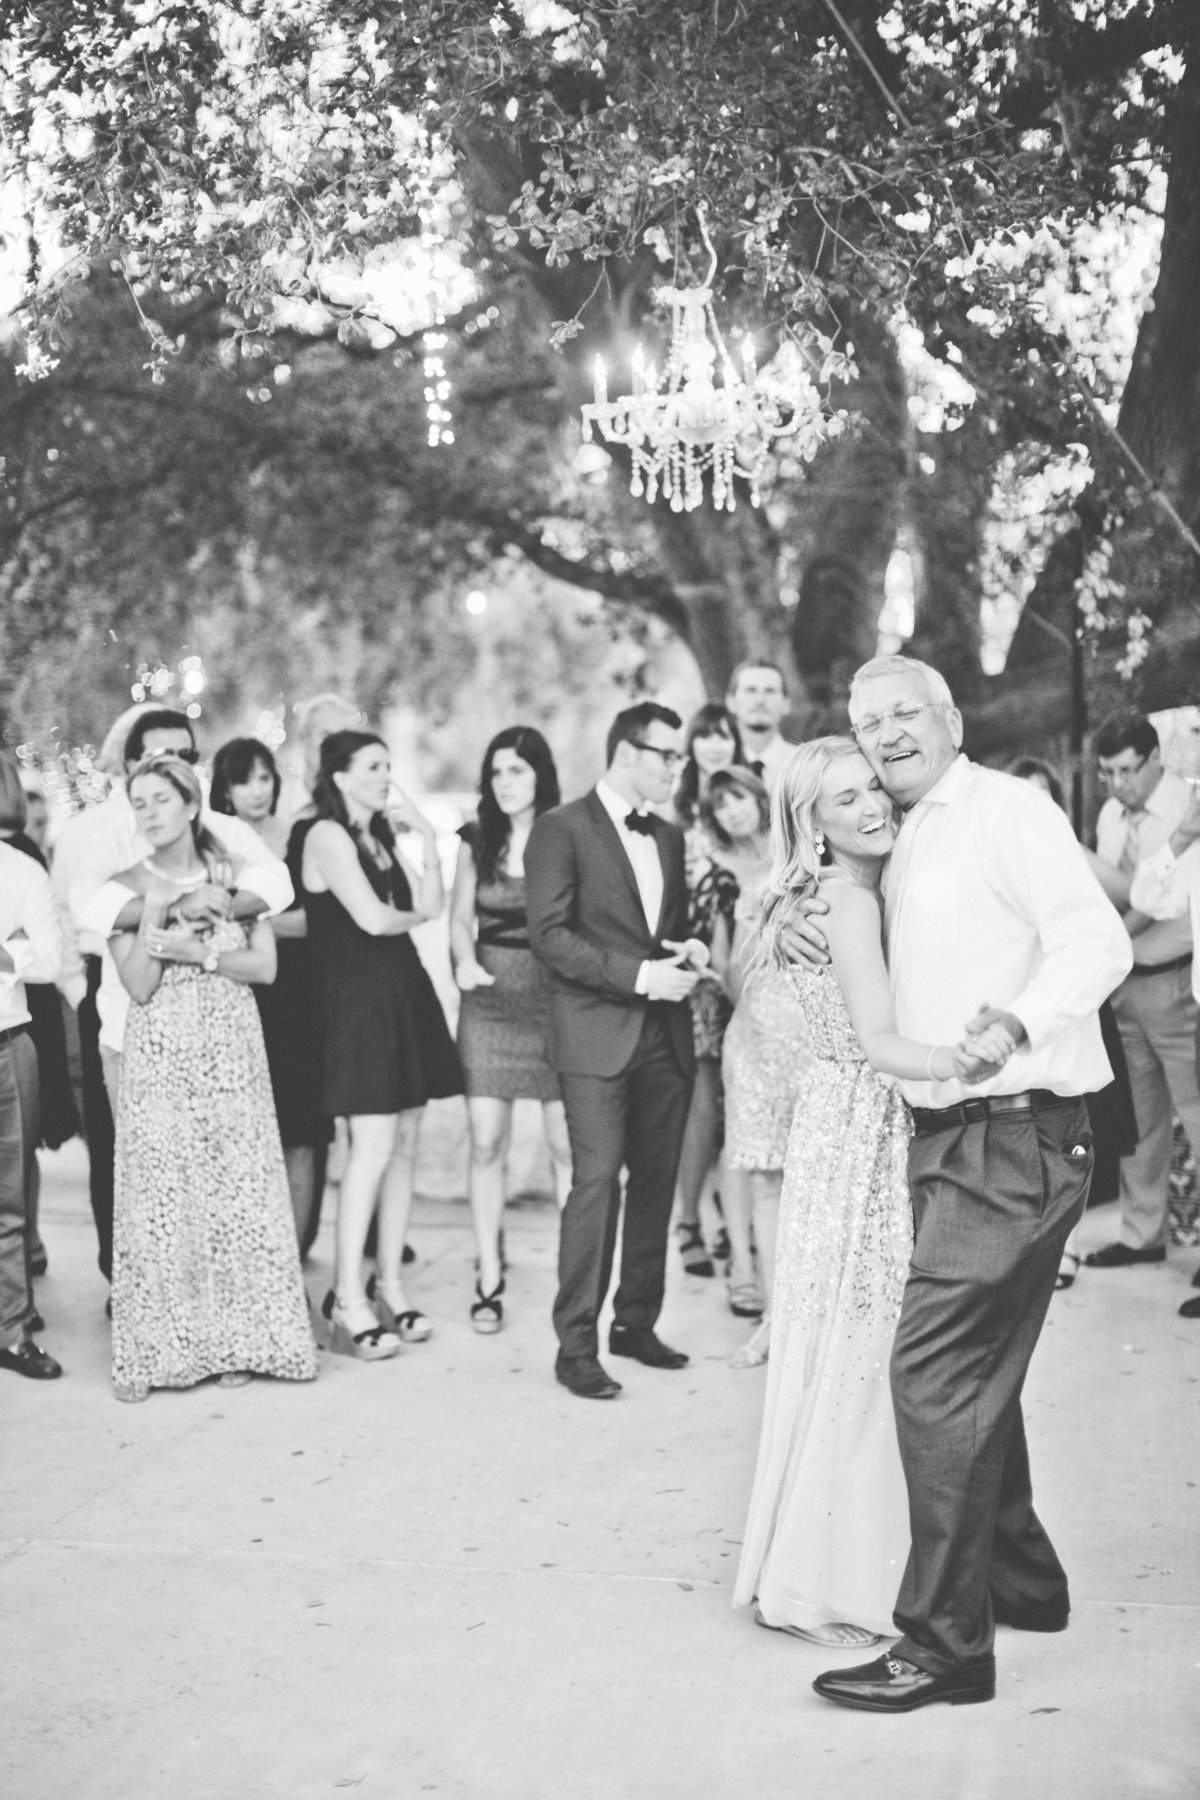 ahmason-ranch-santa-monica-calabasas-california-wedding-photographer-275